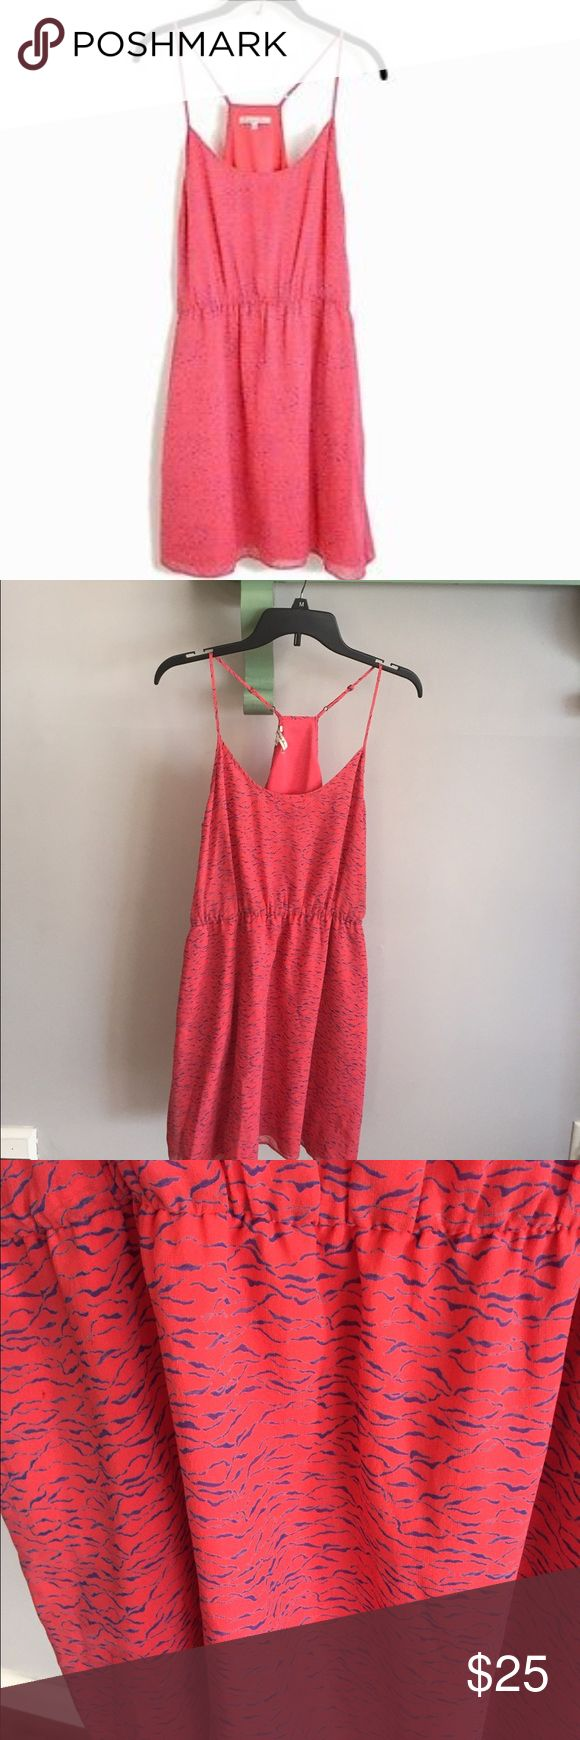 """Madewell """"silk fire crackle cami"""" dress Beautiful Broadway and Broome coral pink dress with blue waves. Elastic waist and adjustable straps. Very light for summer. 100% silk fully lined. Excellent condition the only thing to note is the tag is slightly damaged as seen in second picture- but has absolutely no effect on dress. Bust: 18"""". Waist: 14.5"""". Length: 24"""" from under the arm. Has pockets! Madewell Dresses"""